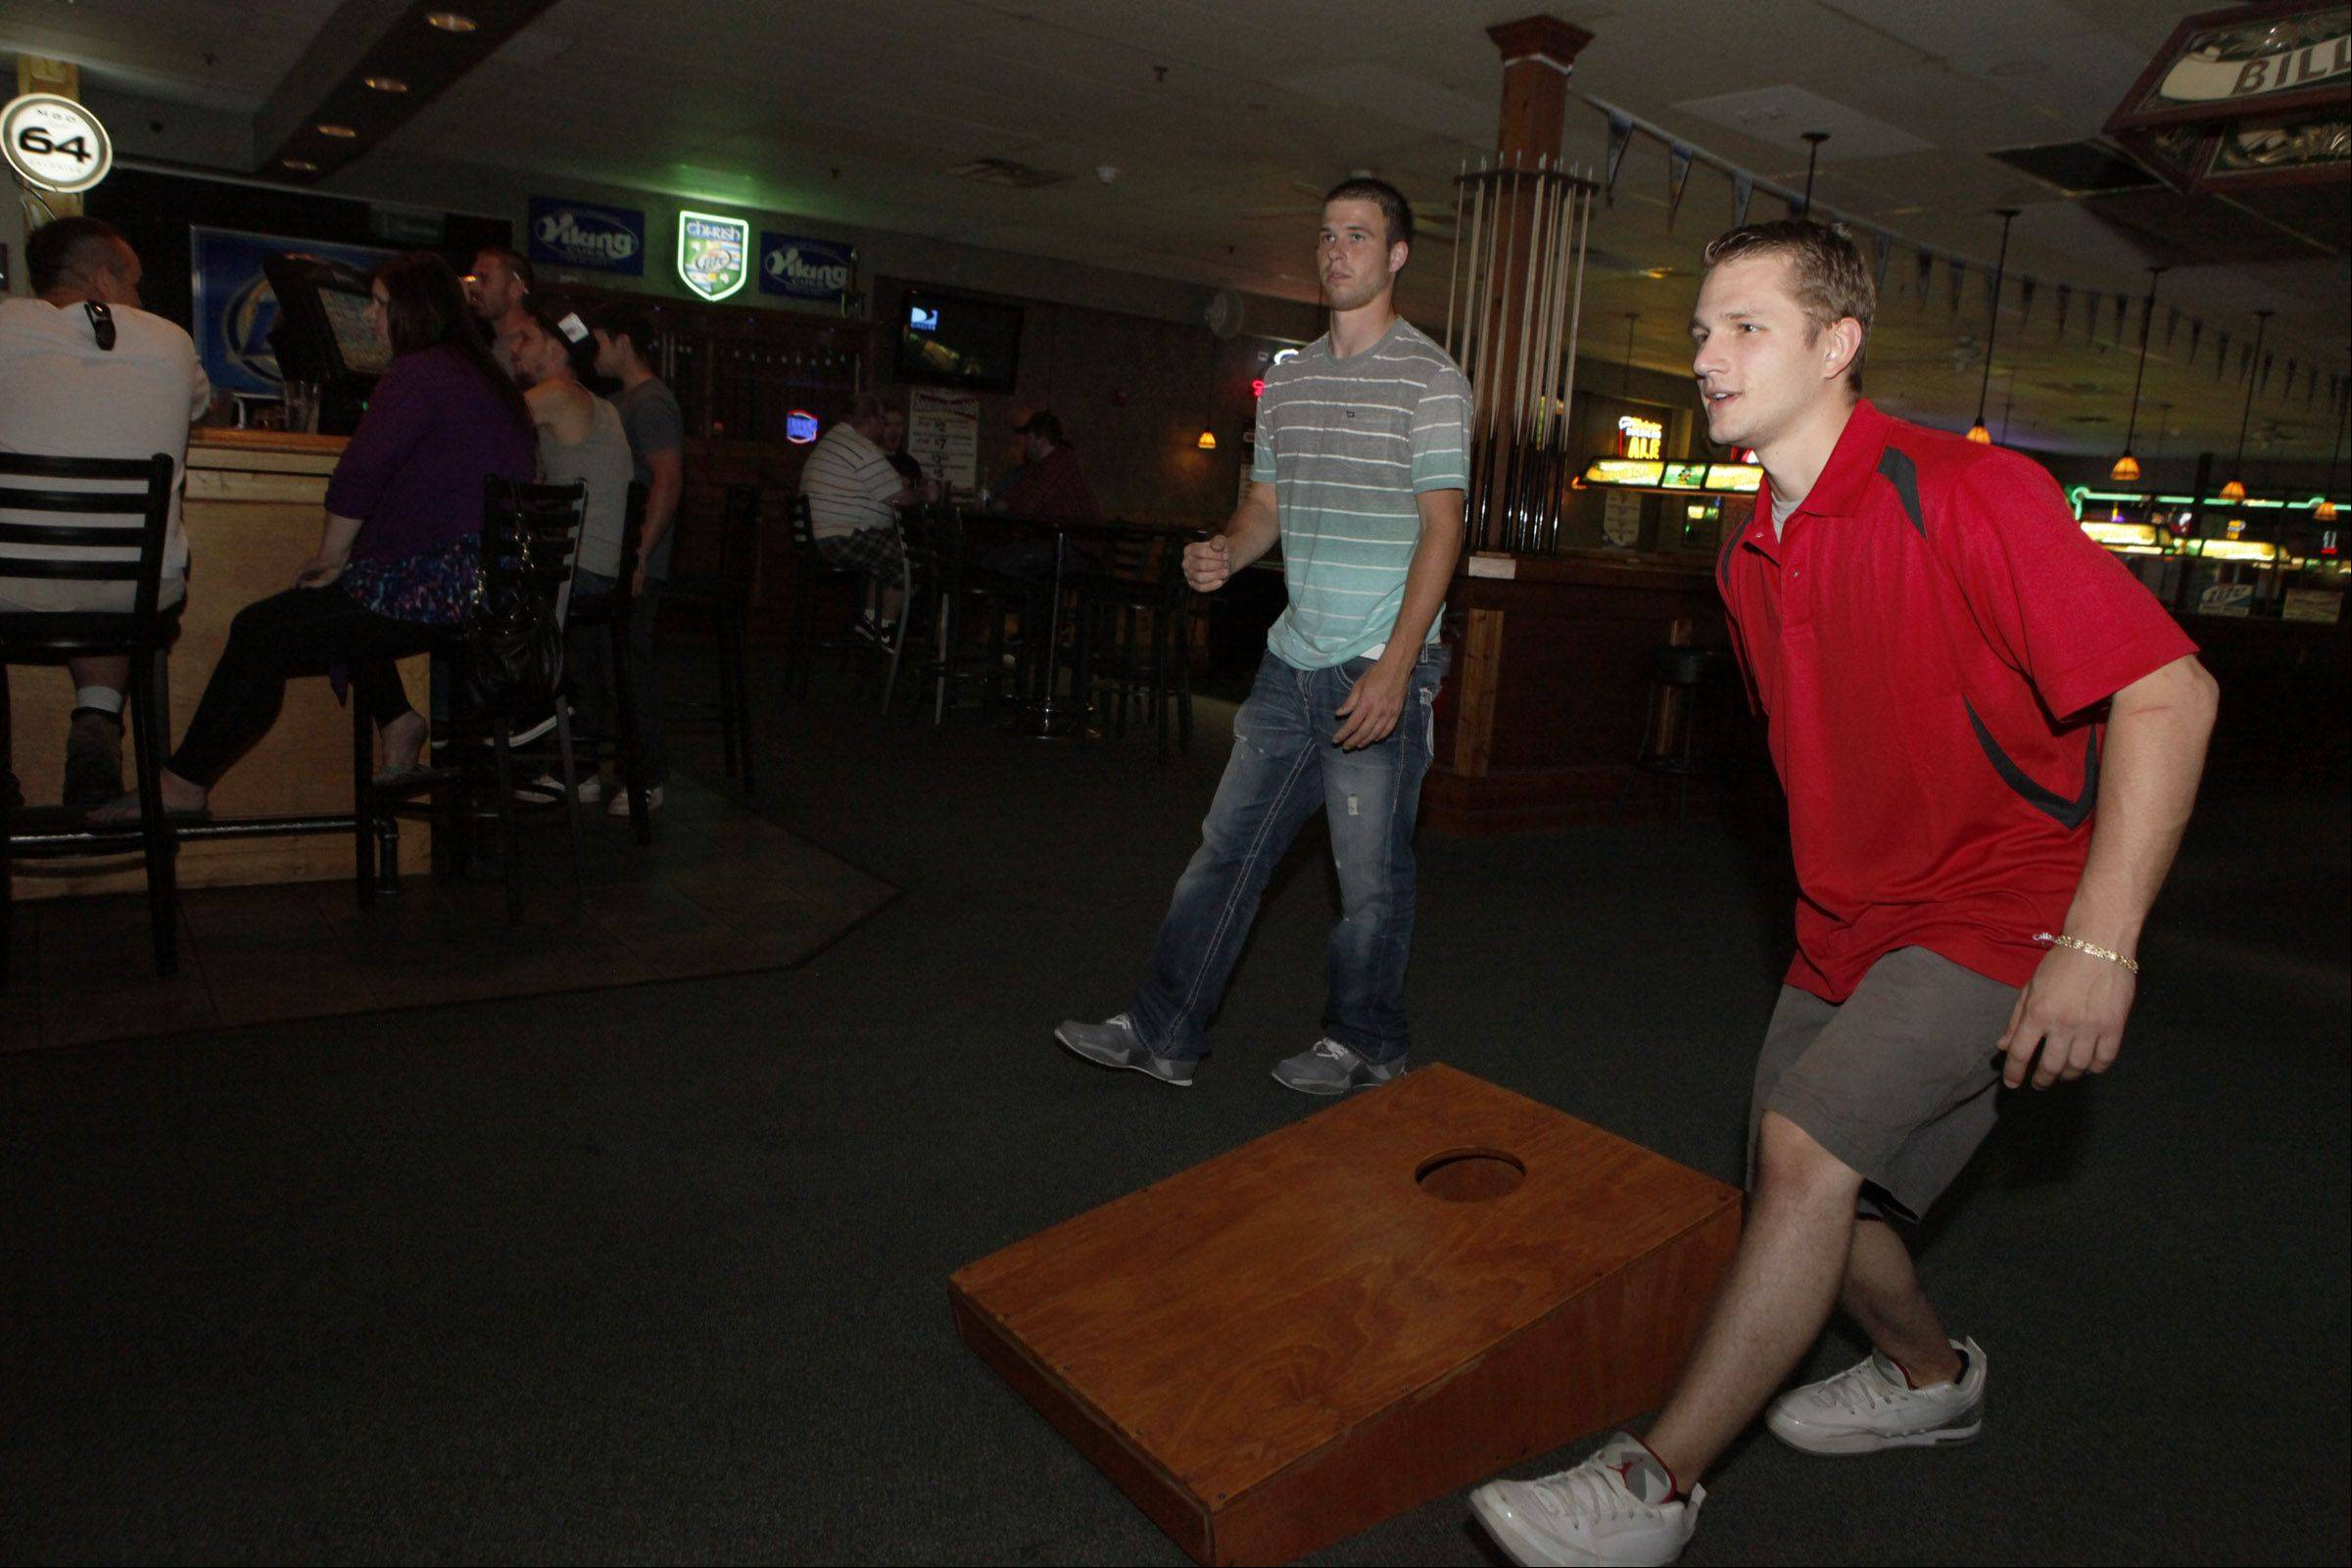 Matt Tagney and Kyle Jendra play a game of bags inside Q Sports Bar in Downers Grove.